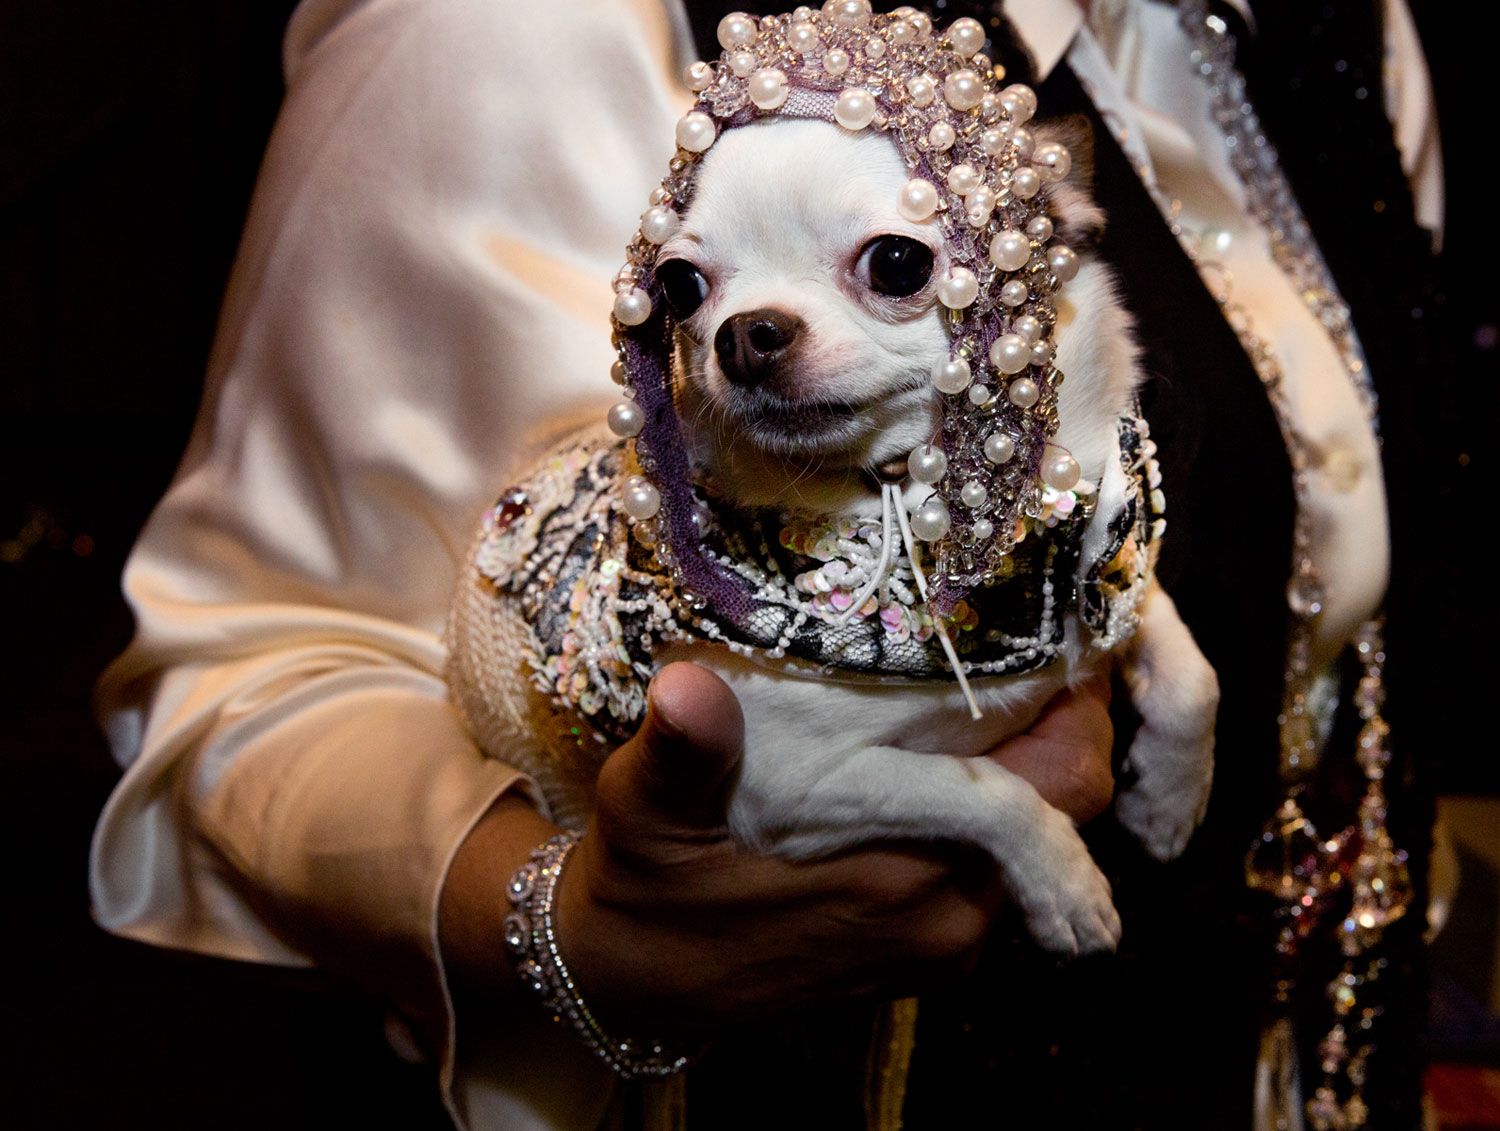 Loudin, a Chihuahua, companion to Ninoska Viaggiano, at the Roaring Twenties Pet Fashion Show presented by Tropiclean and hosted by The Hotel Pennsylvania.